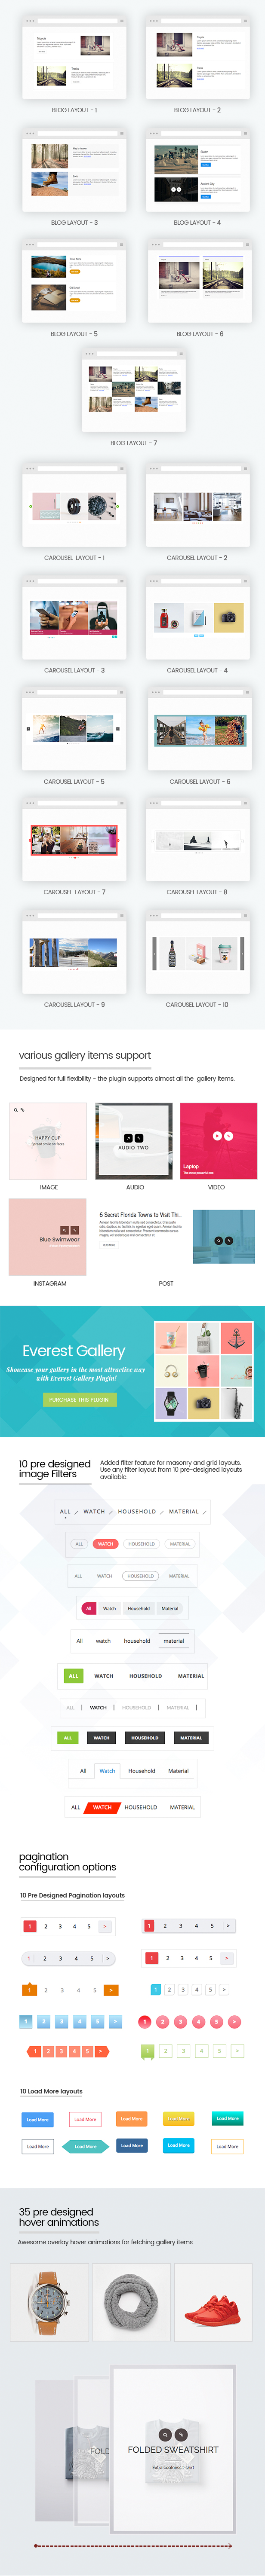 Everest Gallery - Responsive WordPress Gallery Plugin - 2